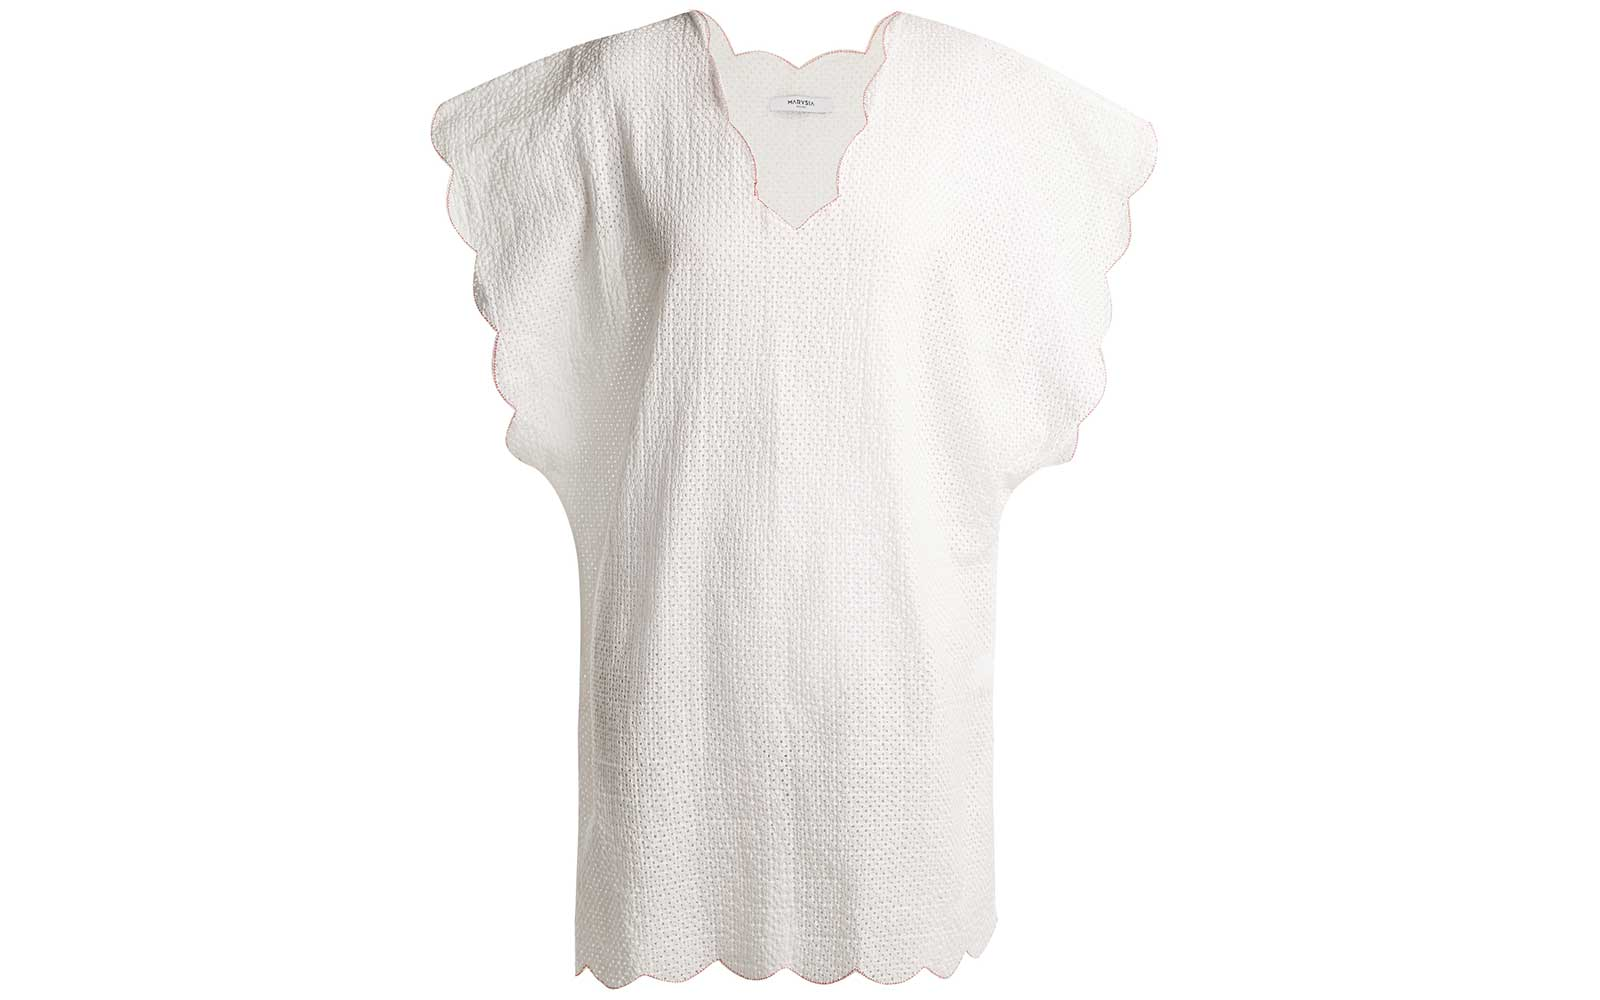 Shelter Island scallop-edged cotton cover-up